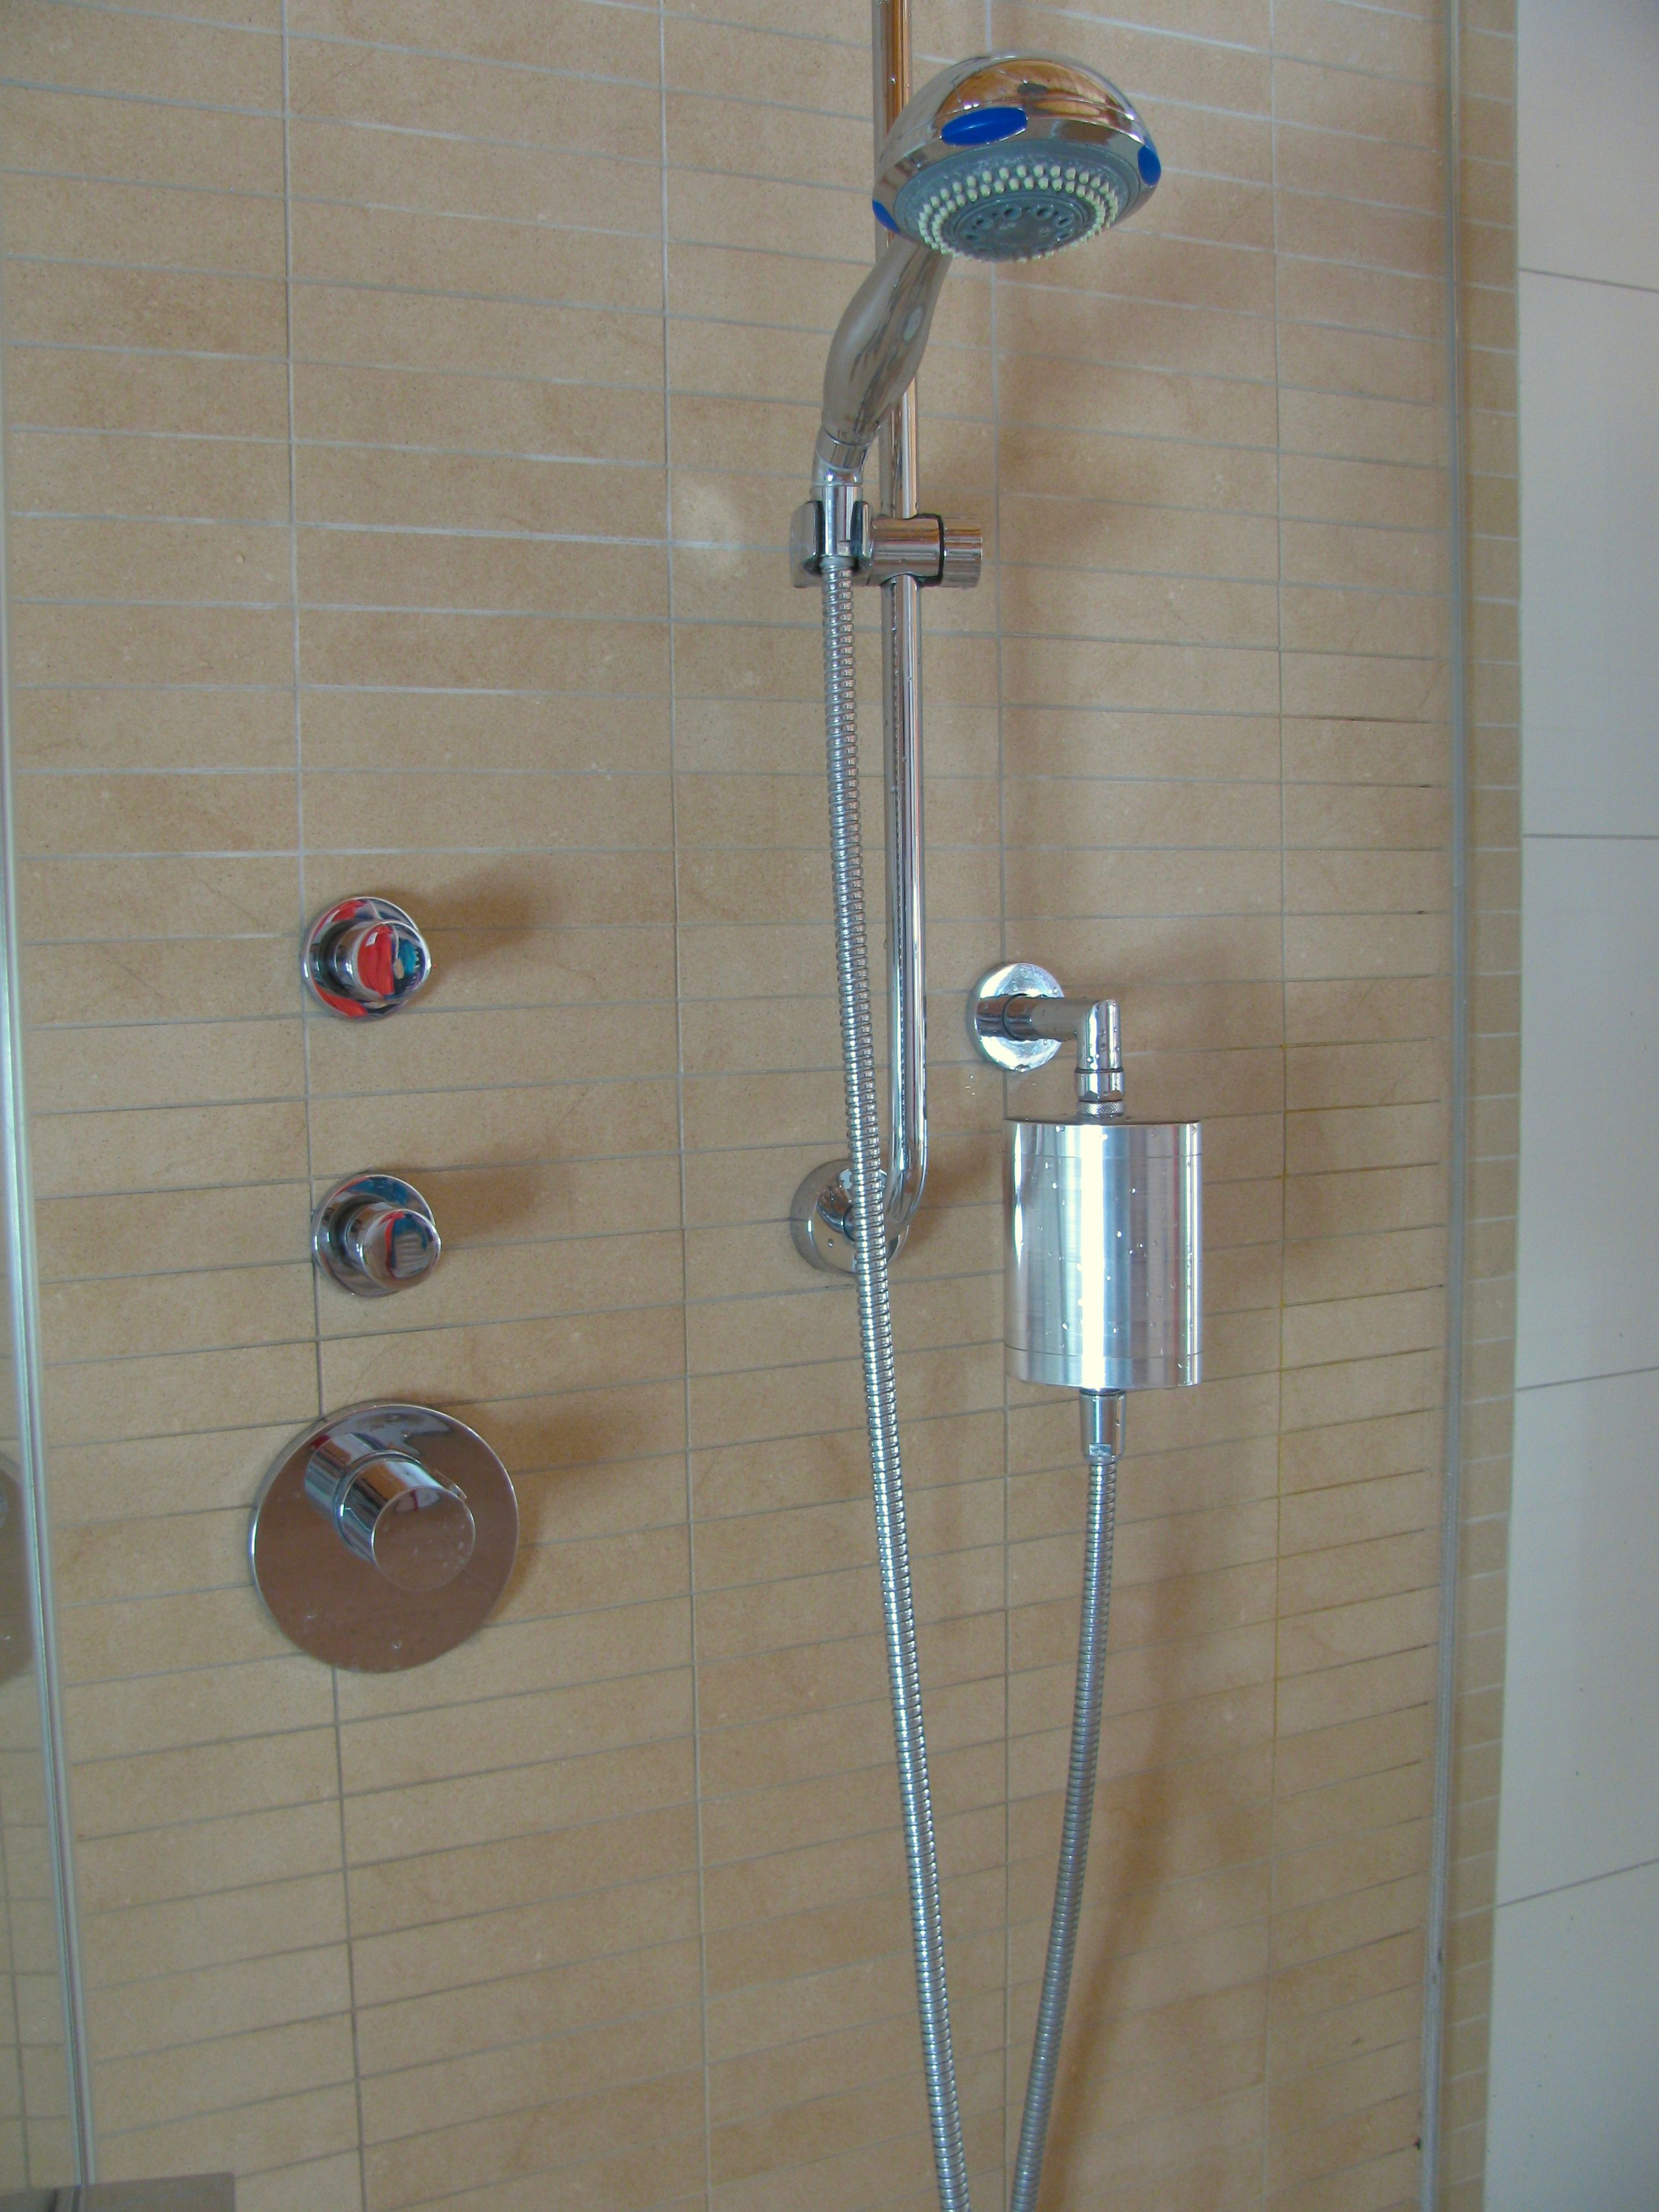 Accessories Furniture Adorable Rain Shower Head Installation With Brushed Nickel Modern For Bathroom